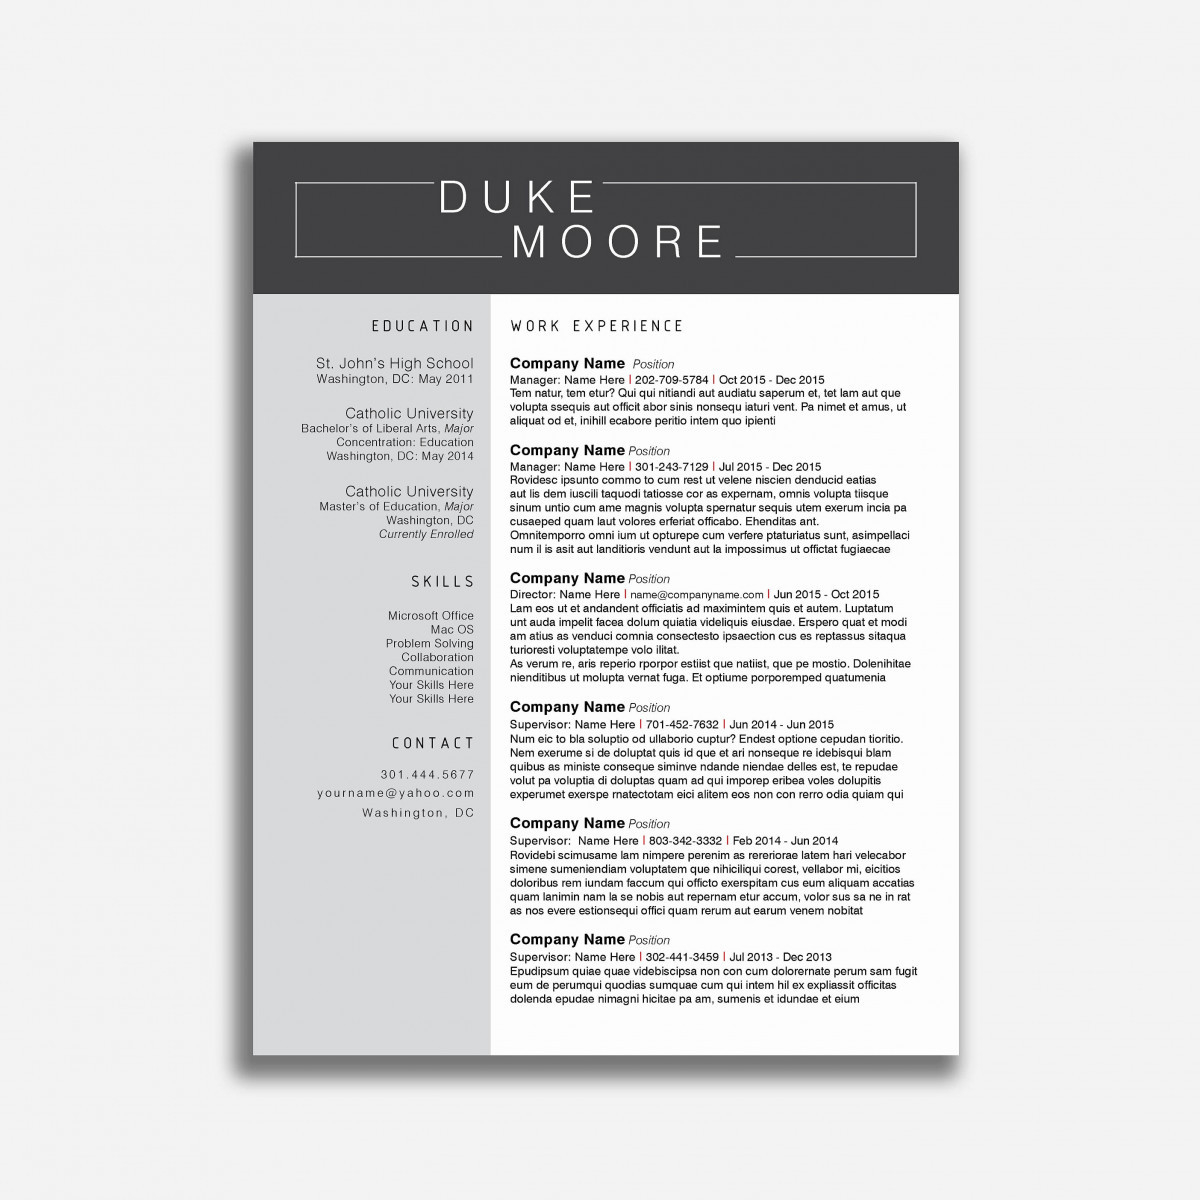 Resume Template Bartender - Bartender Resume Templates Inspirational Resume Template for